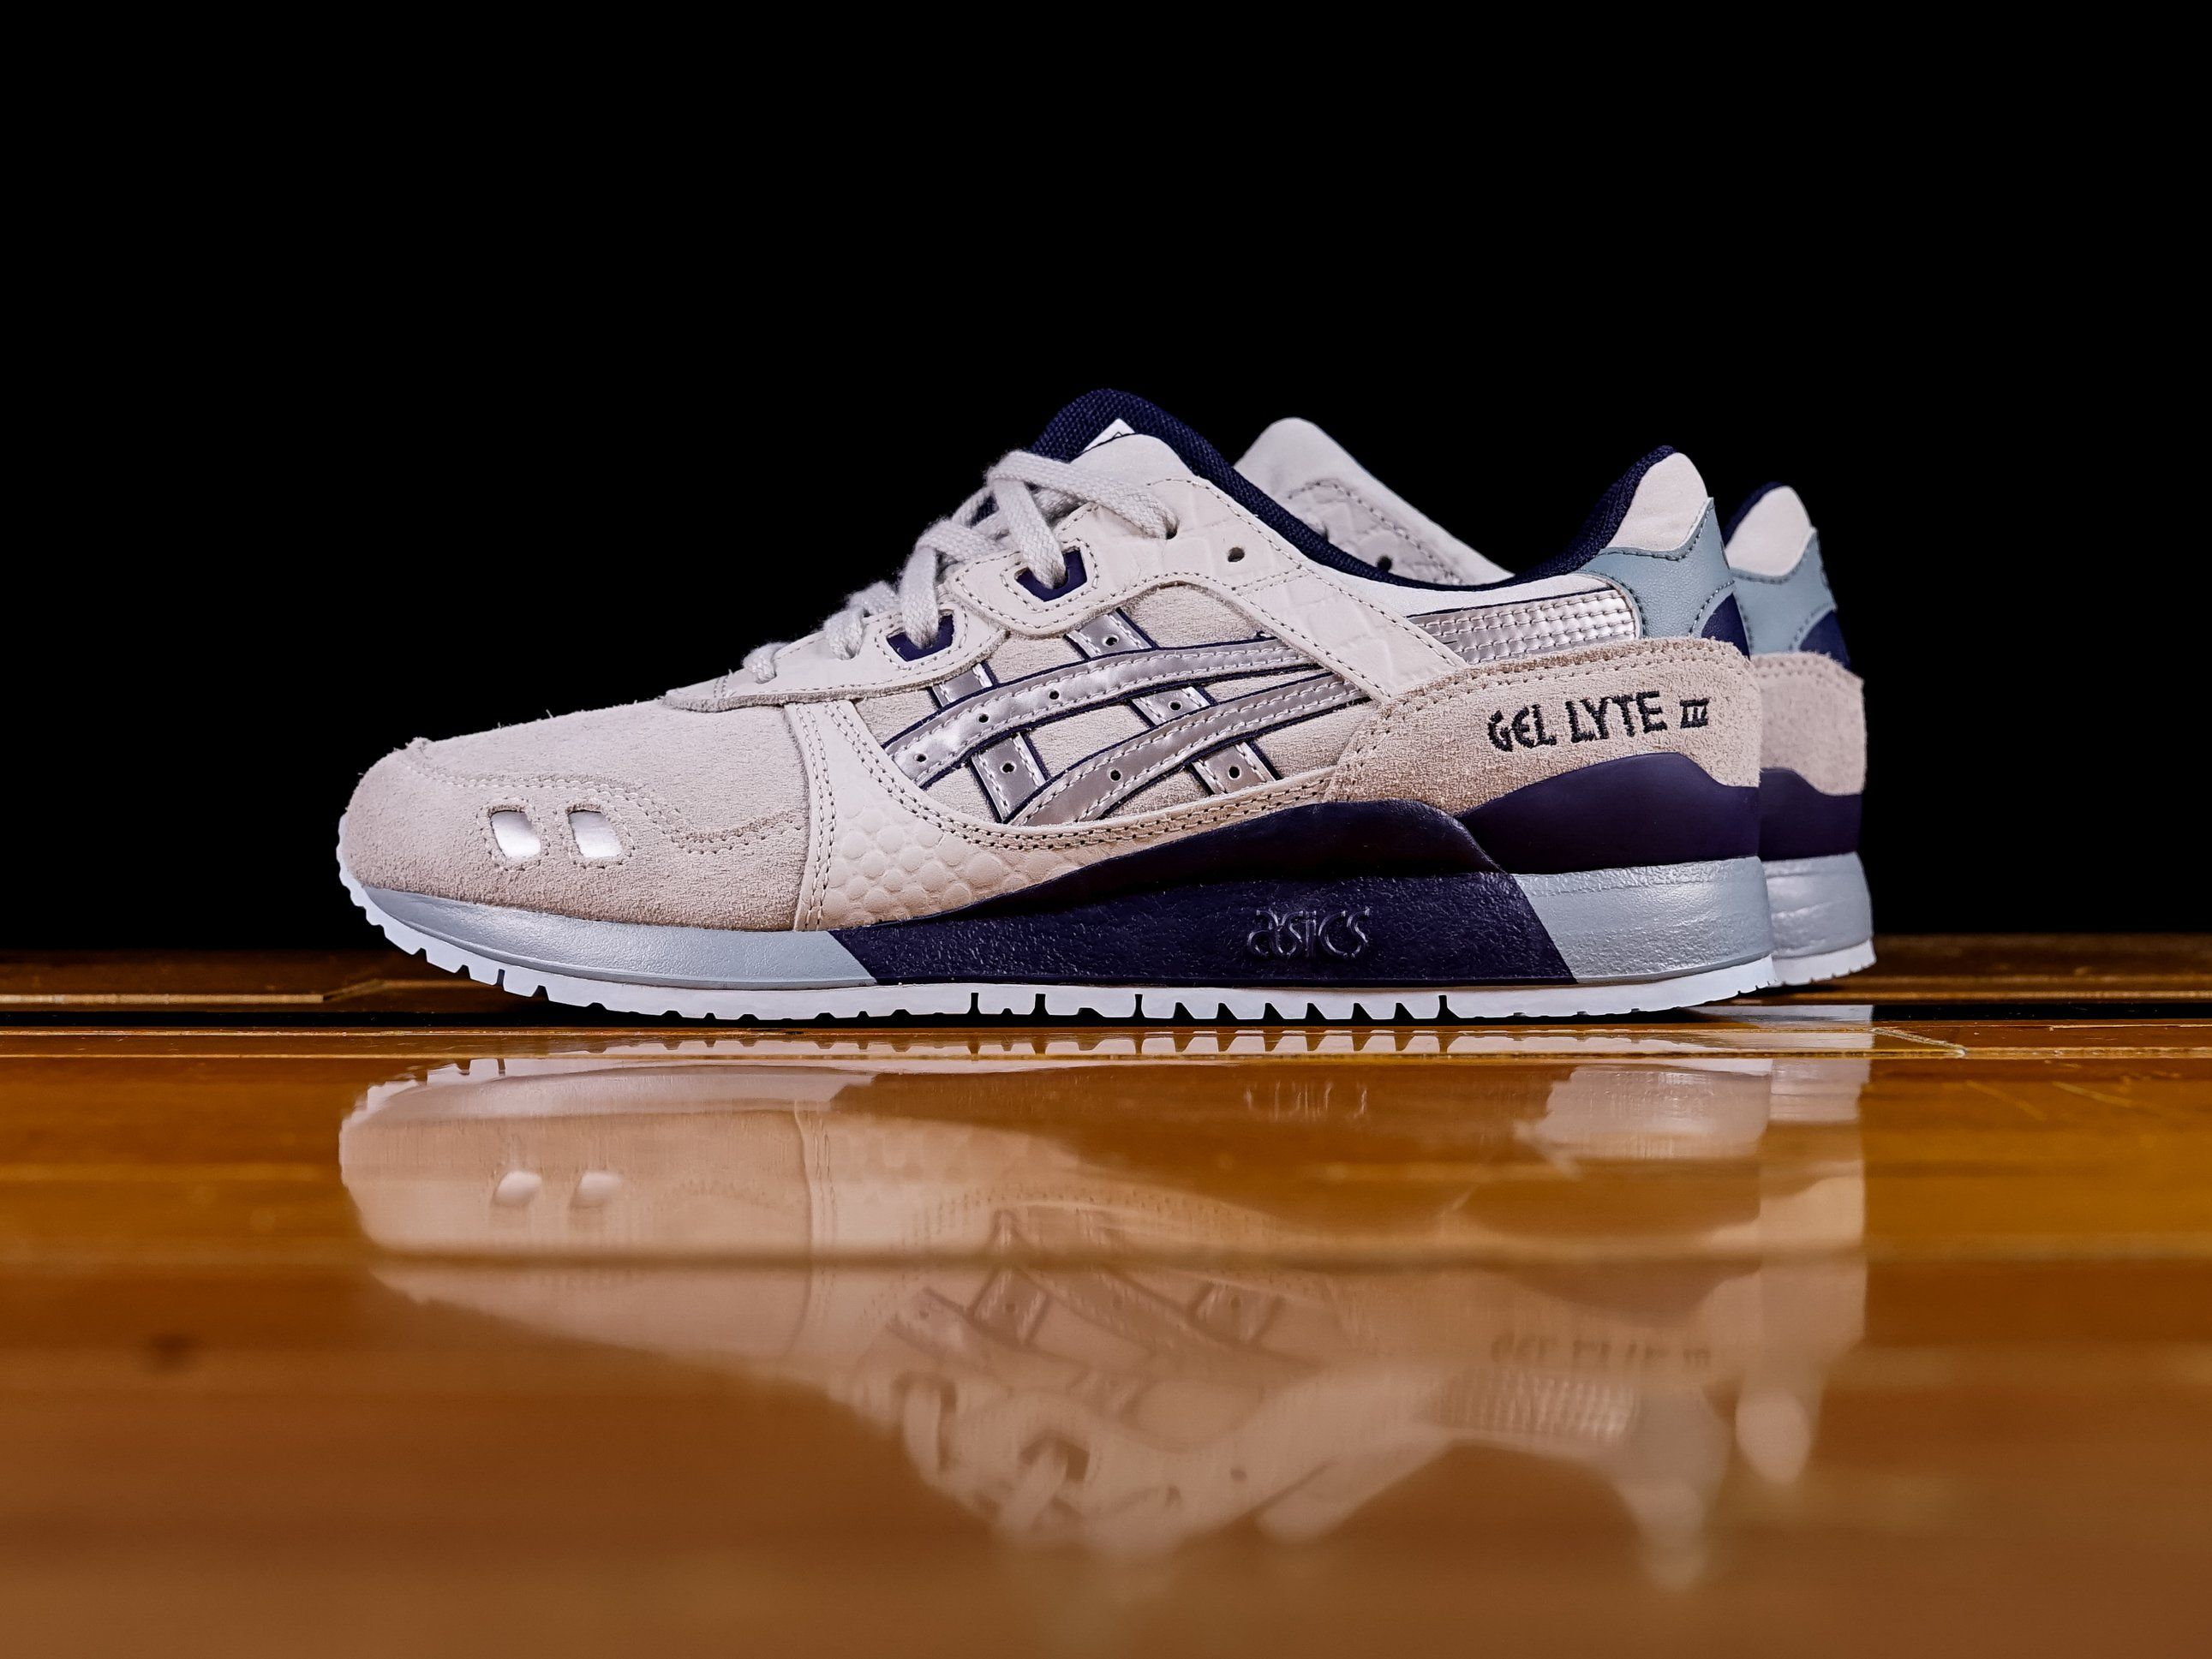 Men's Asics Gel Lyte III 'Glacier Grey' [1191A201 020] in